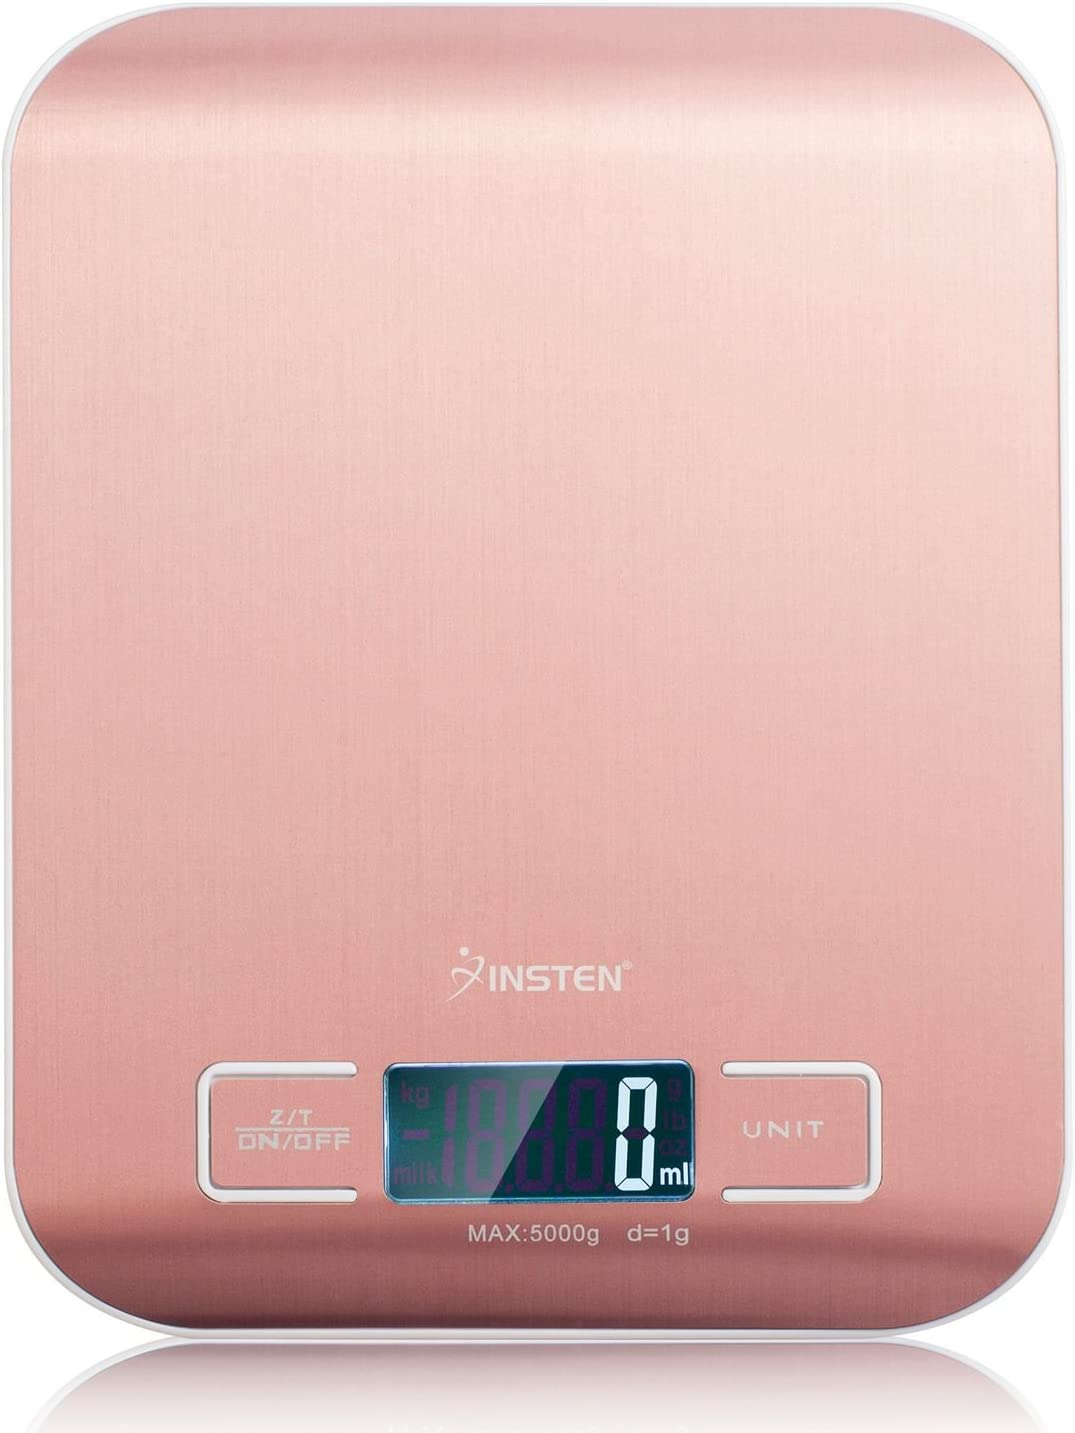 Insten Digital Kitchen Scale, Rose Gold Water Resistant Stainless Steel Surface, LCD Display, Precise Food Scale 0g to 5000g [11 lb/5 kg] [from 0.04 oz] for Cooking, Baking, Home, Office, Postage